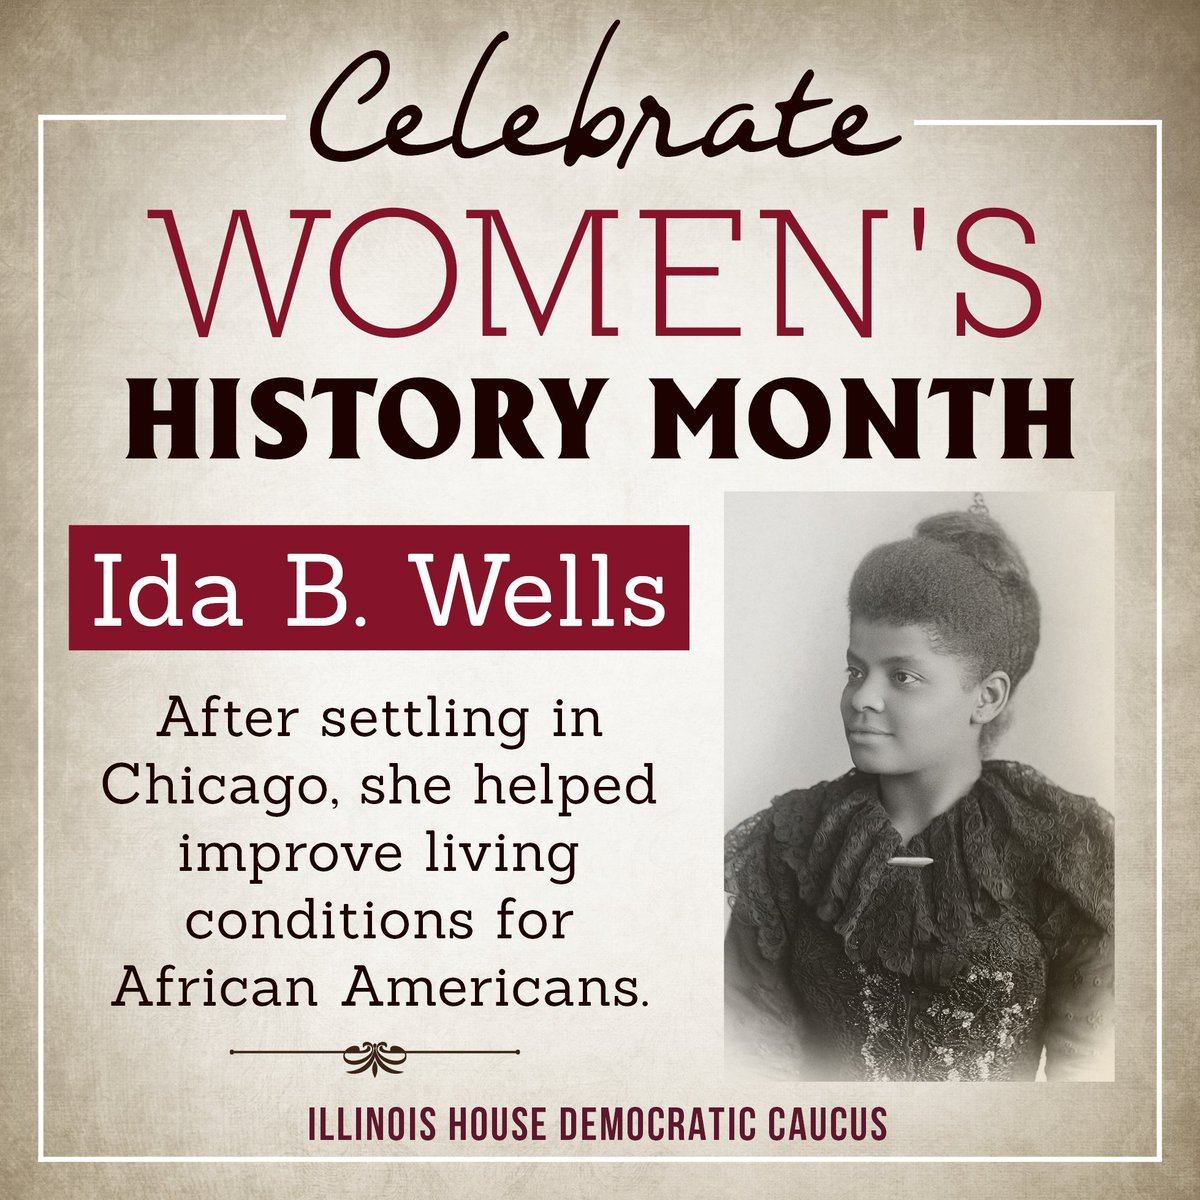 test Twitter Media - Ida B. Wells championed African-American rights after the Civil War and supported the foundation of the NAACP.  #WomensHistoryMonth https://t.co/ynP71eCm3z